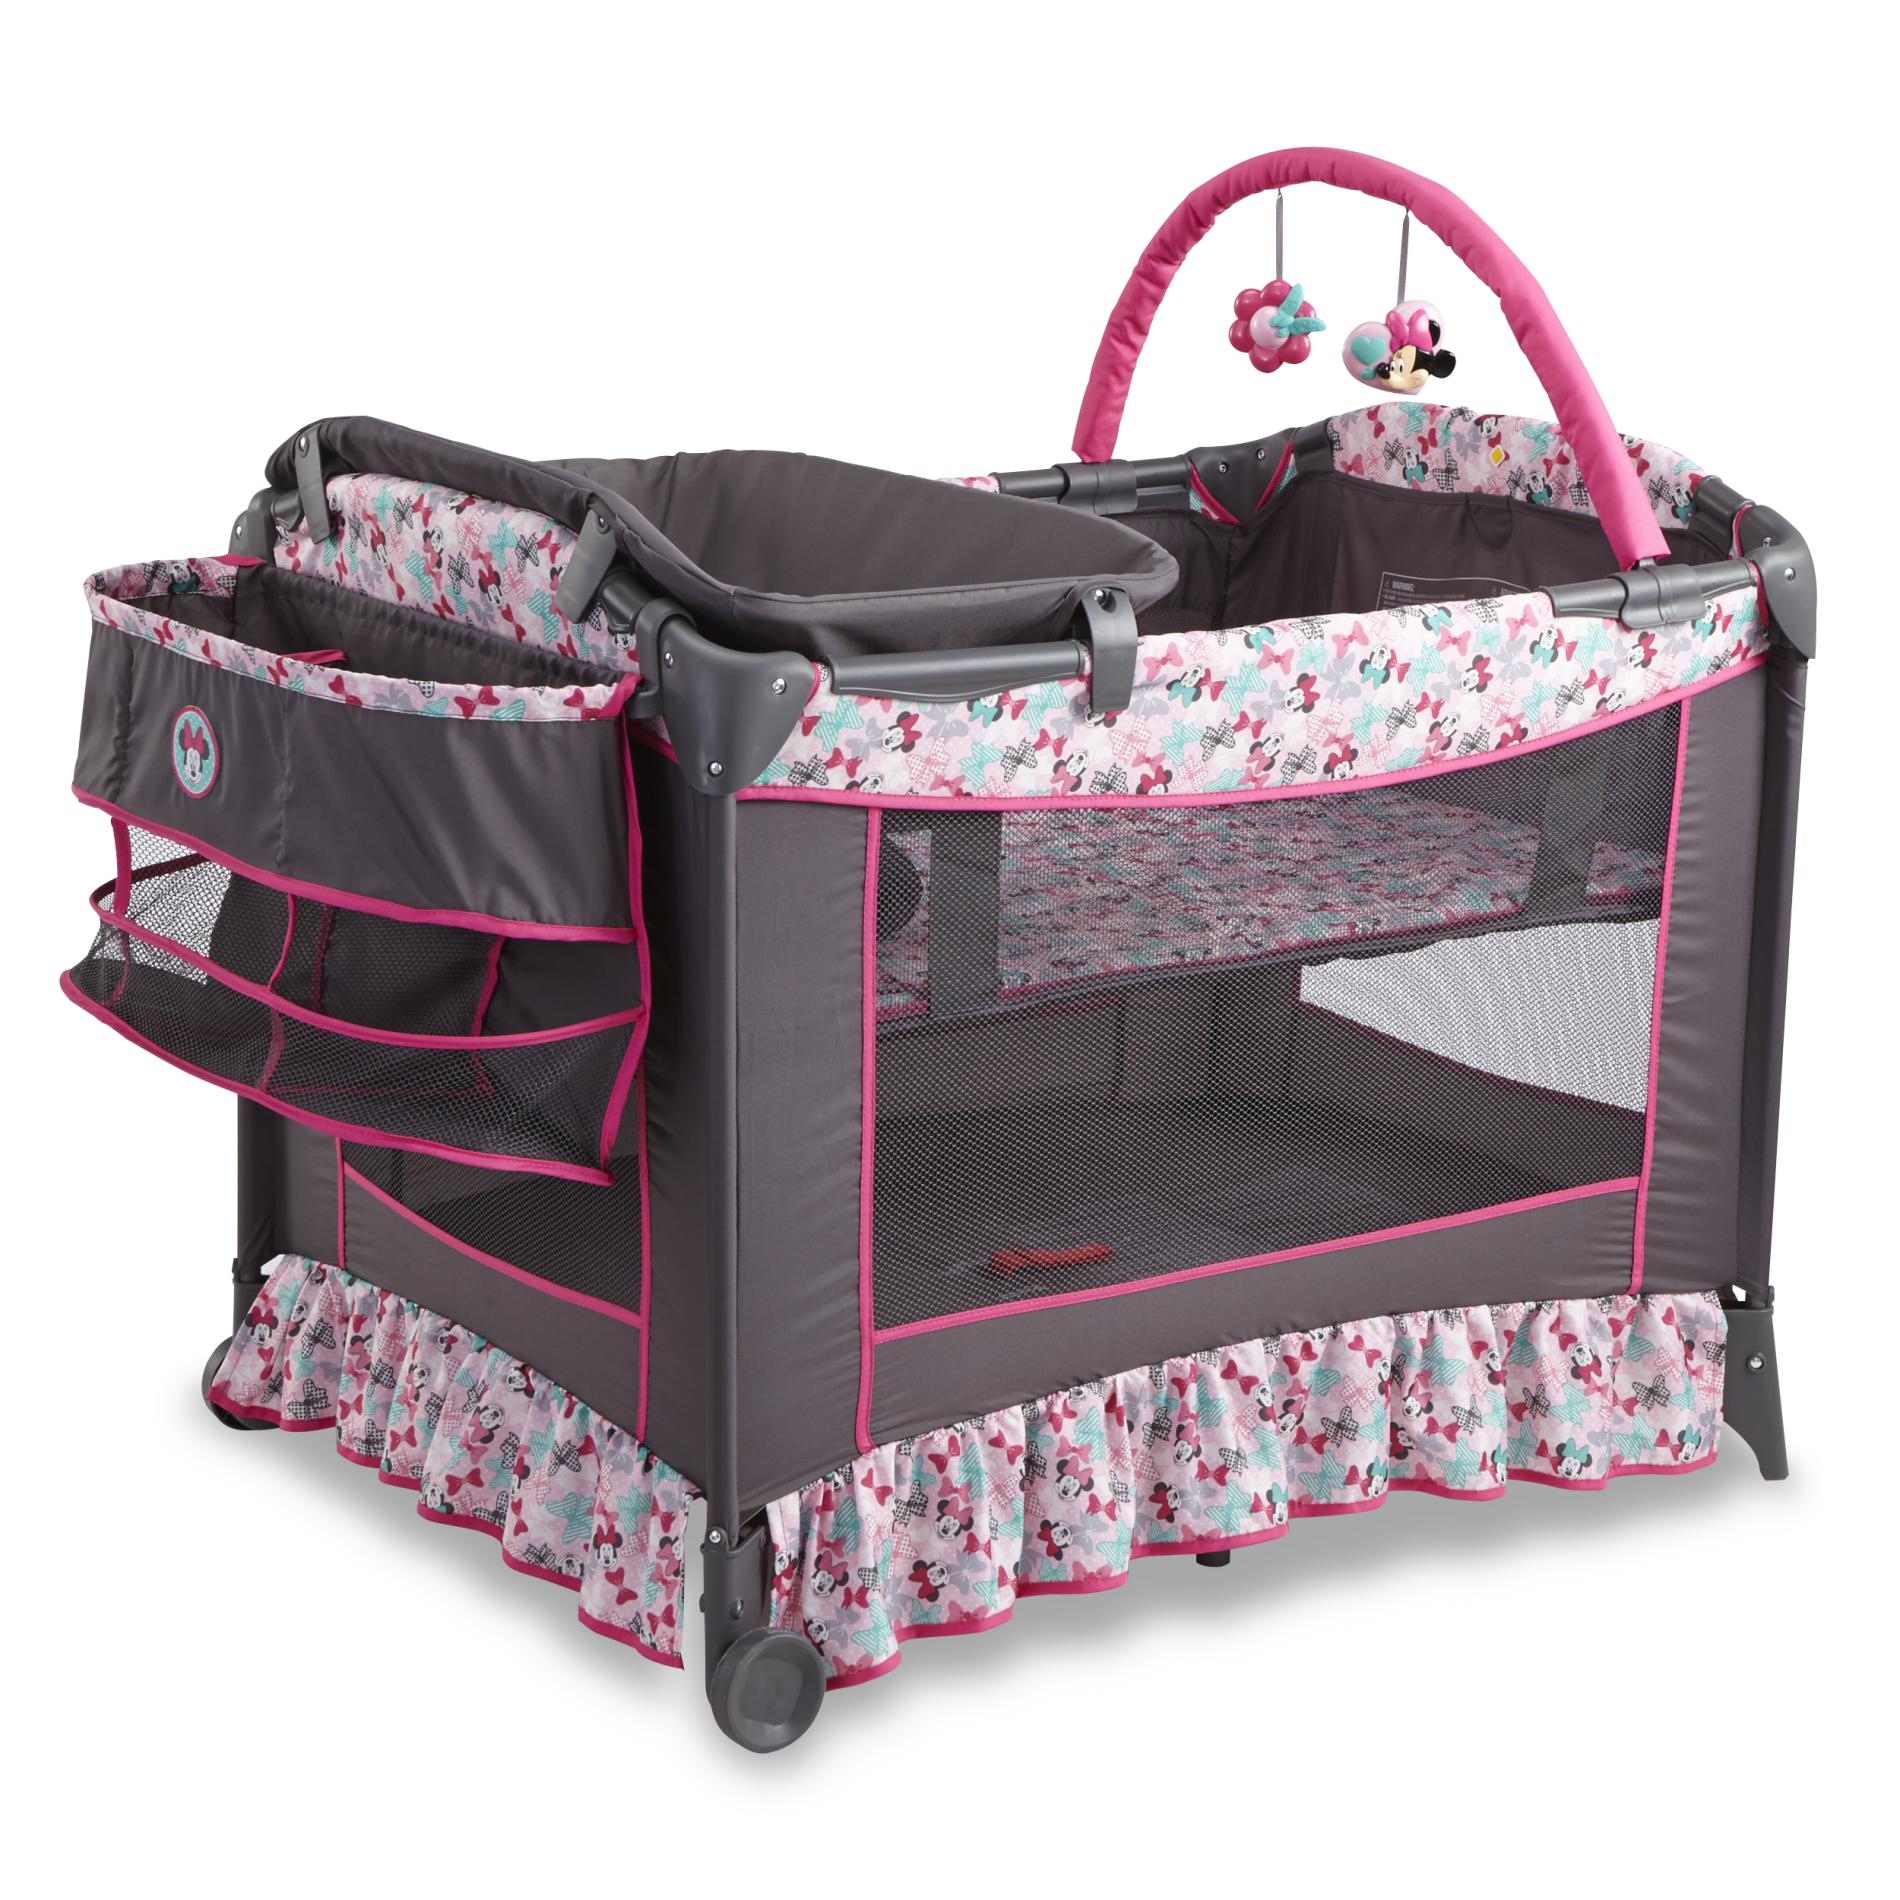 Outdoor Baby Playpen Disney Girls 39; Minnie Mouse Sweet Wonder Convertible Play